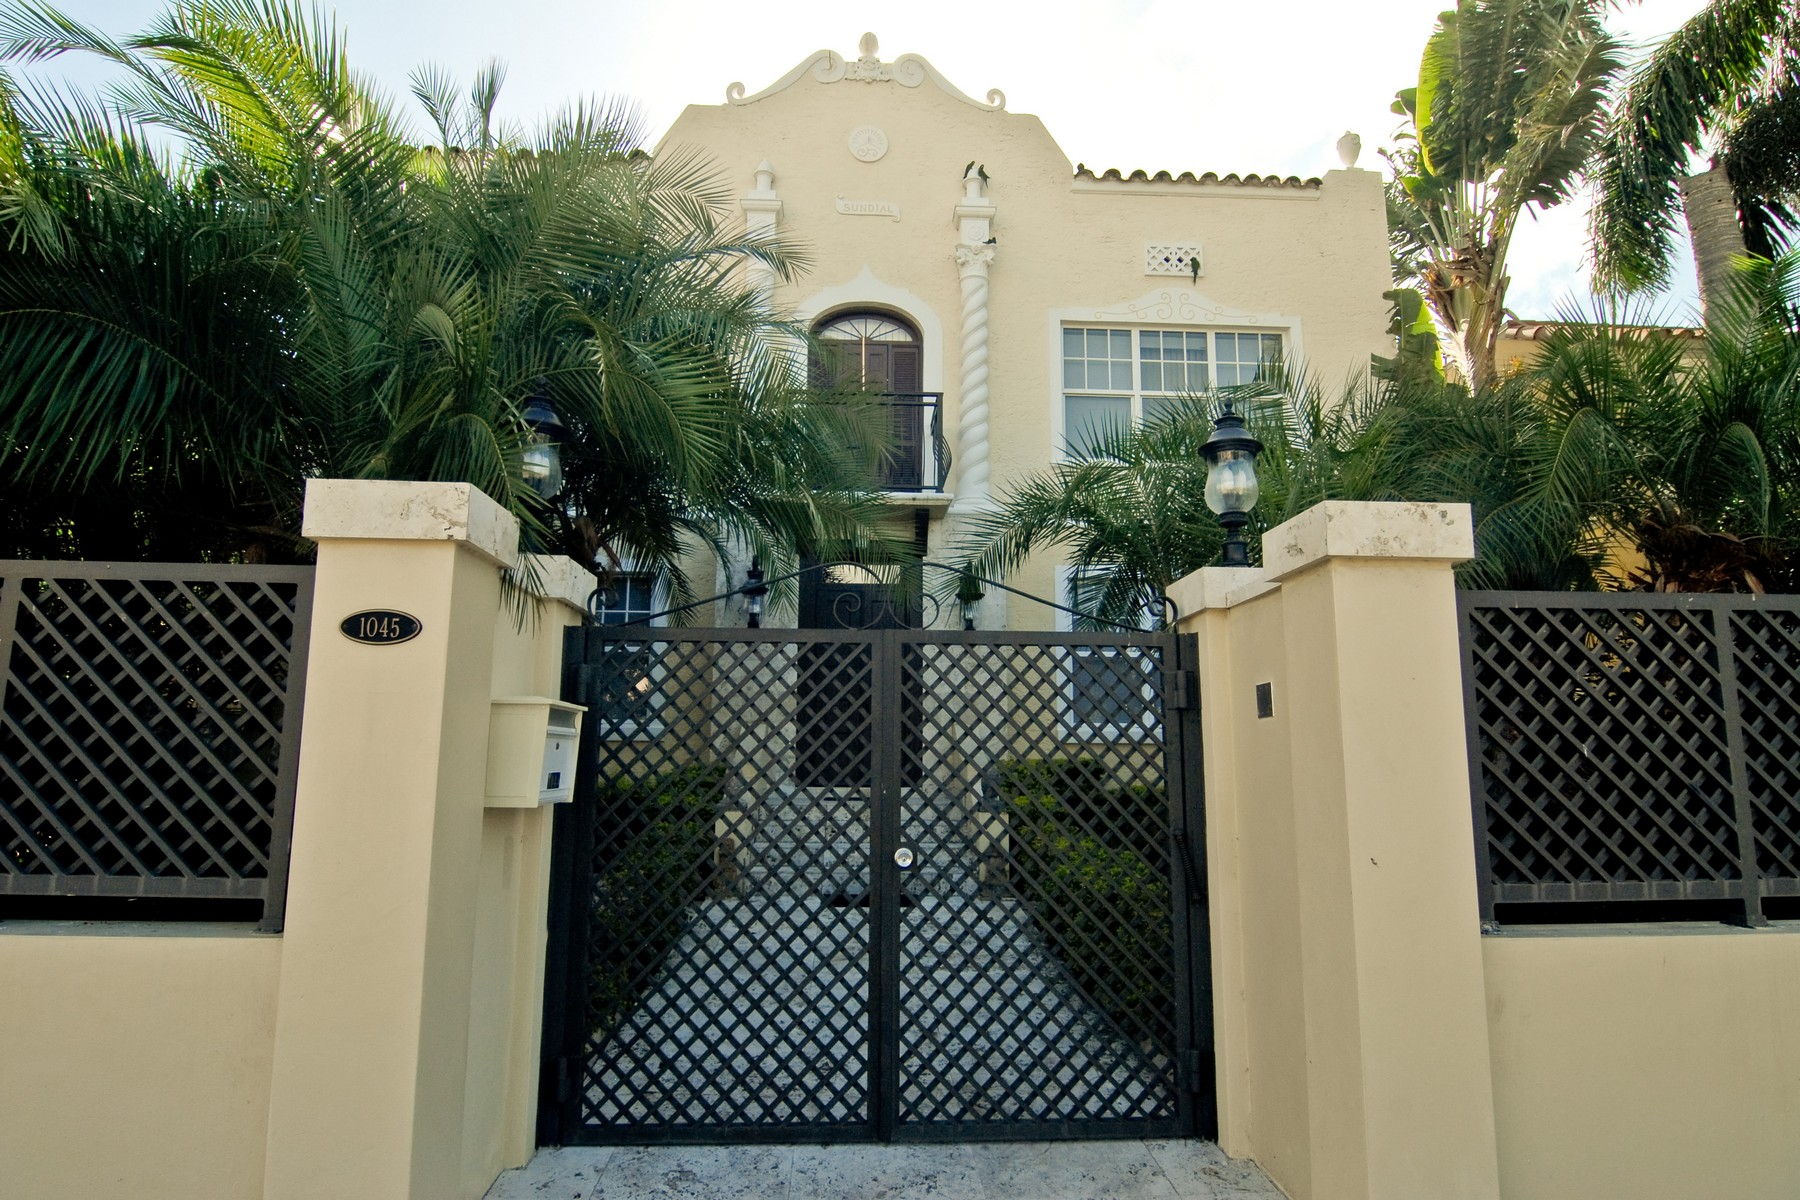 Single Family Home for Sale at 1045 Pennsylvania Avenue Miami Beach, Florida, 33139 United States